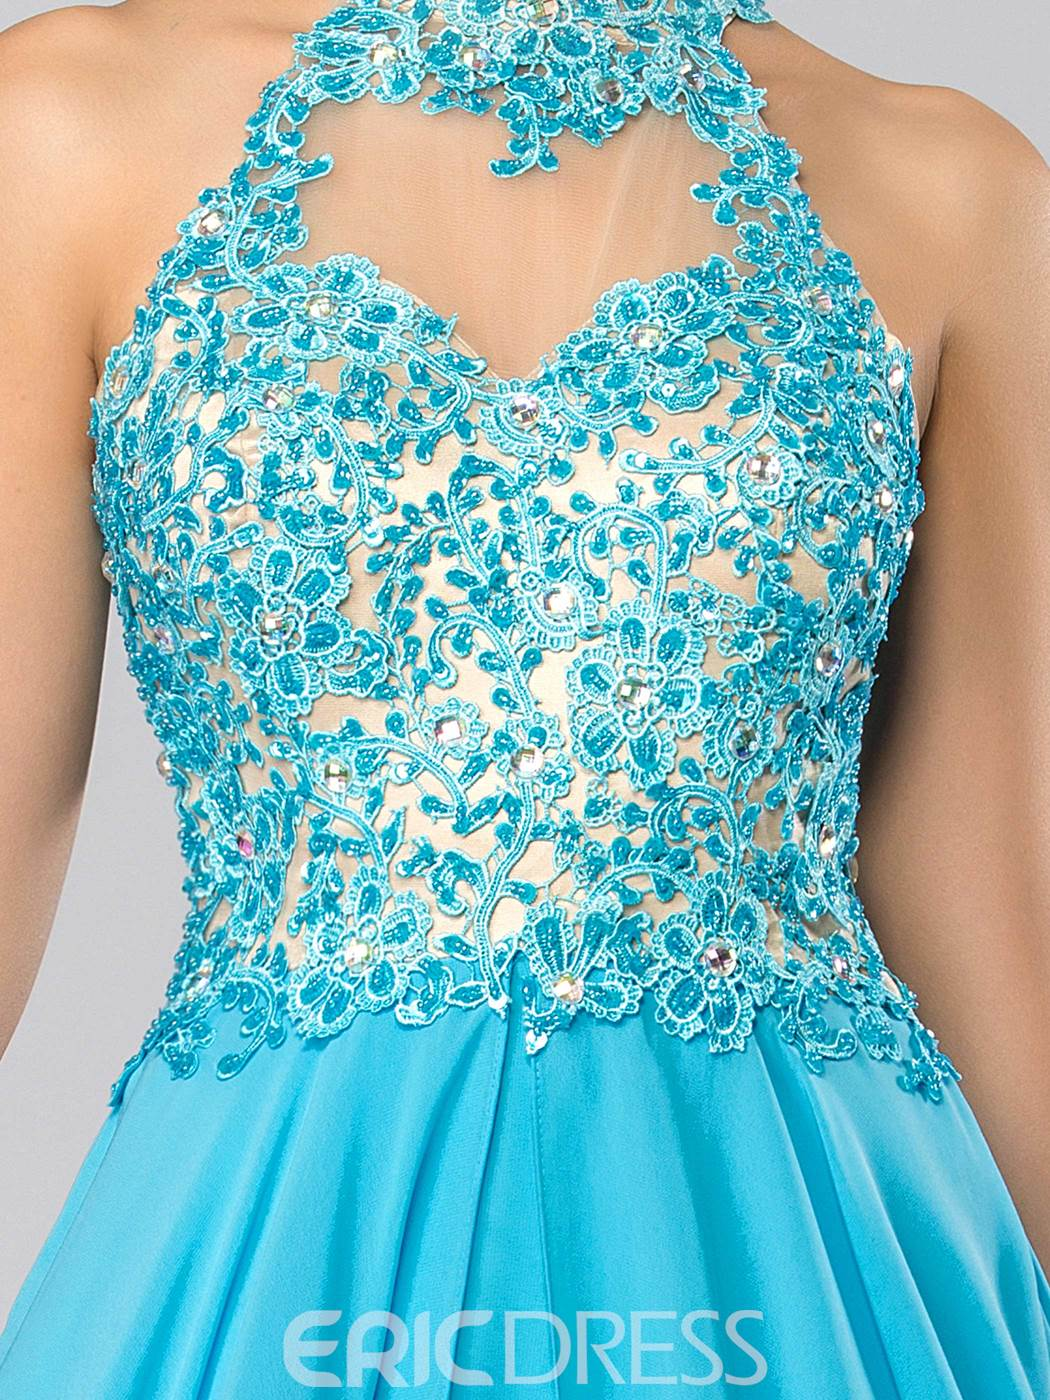 High Neck Appliques Beading Backless Long Prom Dress